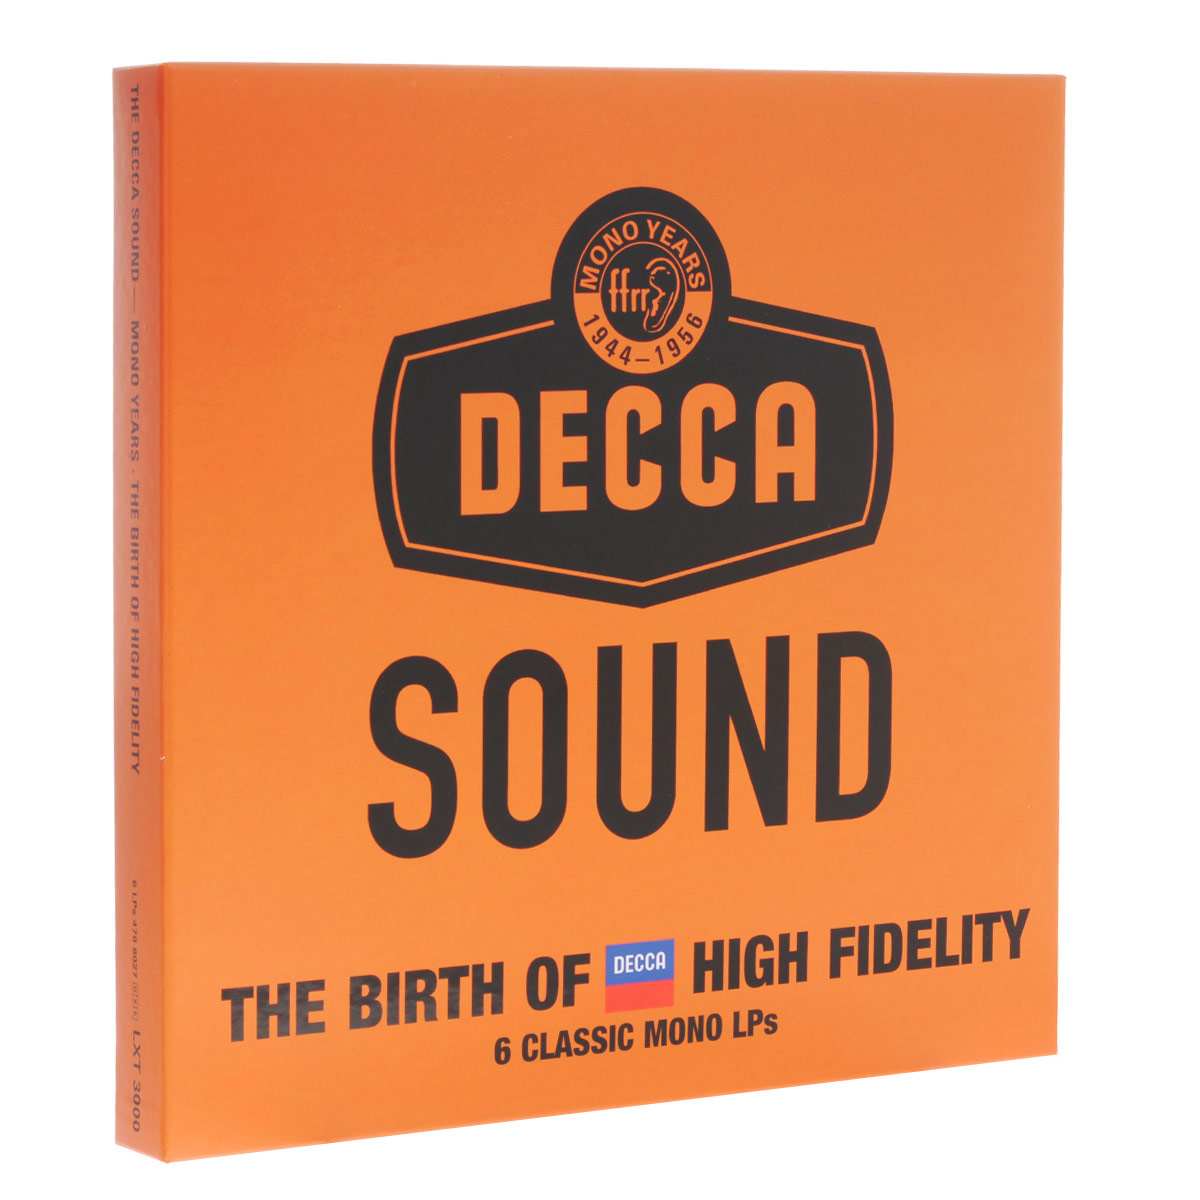 Зара Нельсова,Artur Balsam The Decca Sound - Mono Years. The Birth Of High Fidelity (Limited Edition) (6 LP) the bellrays the bellrays hard sweet and sticky limited edition color lp